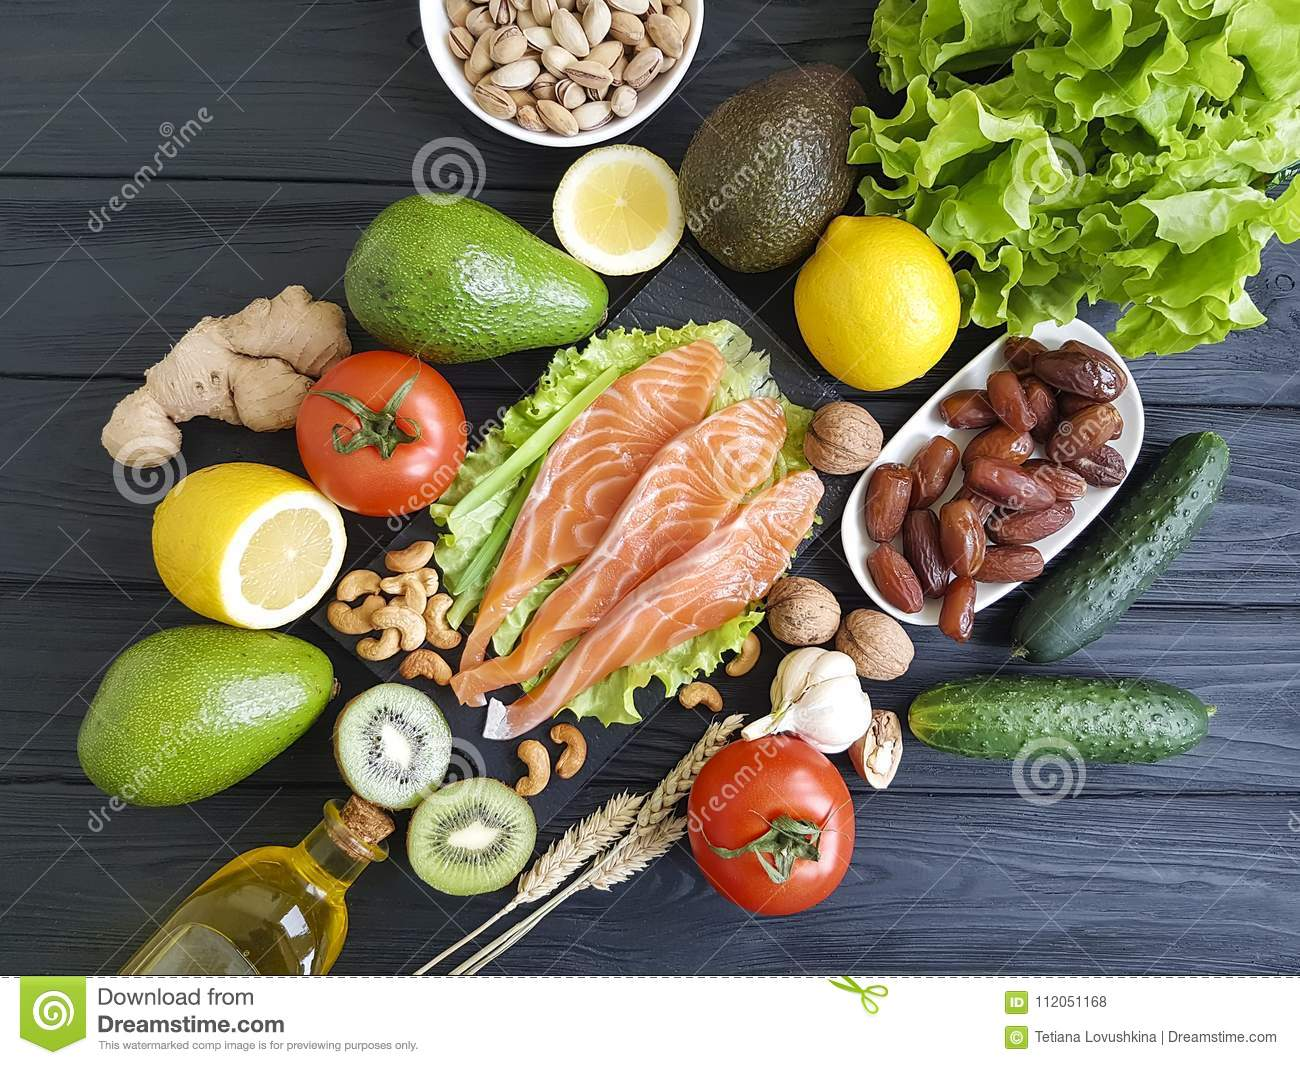 salmon fish, avocado organic green dietary on a wooden healthy food assorted